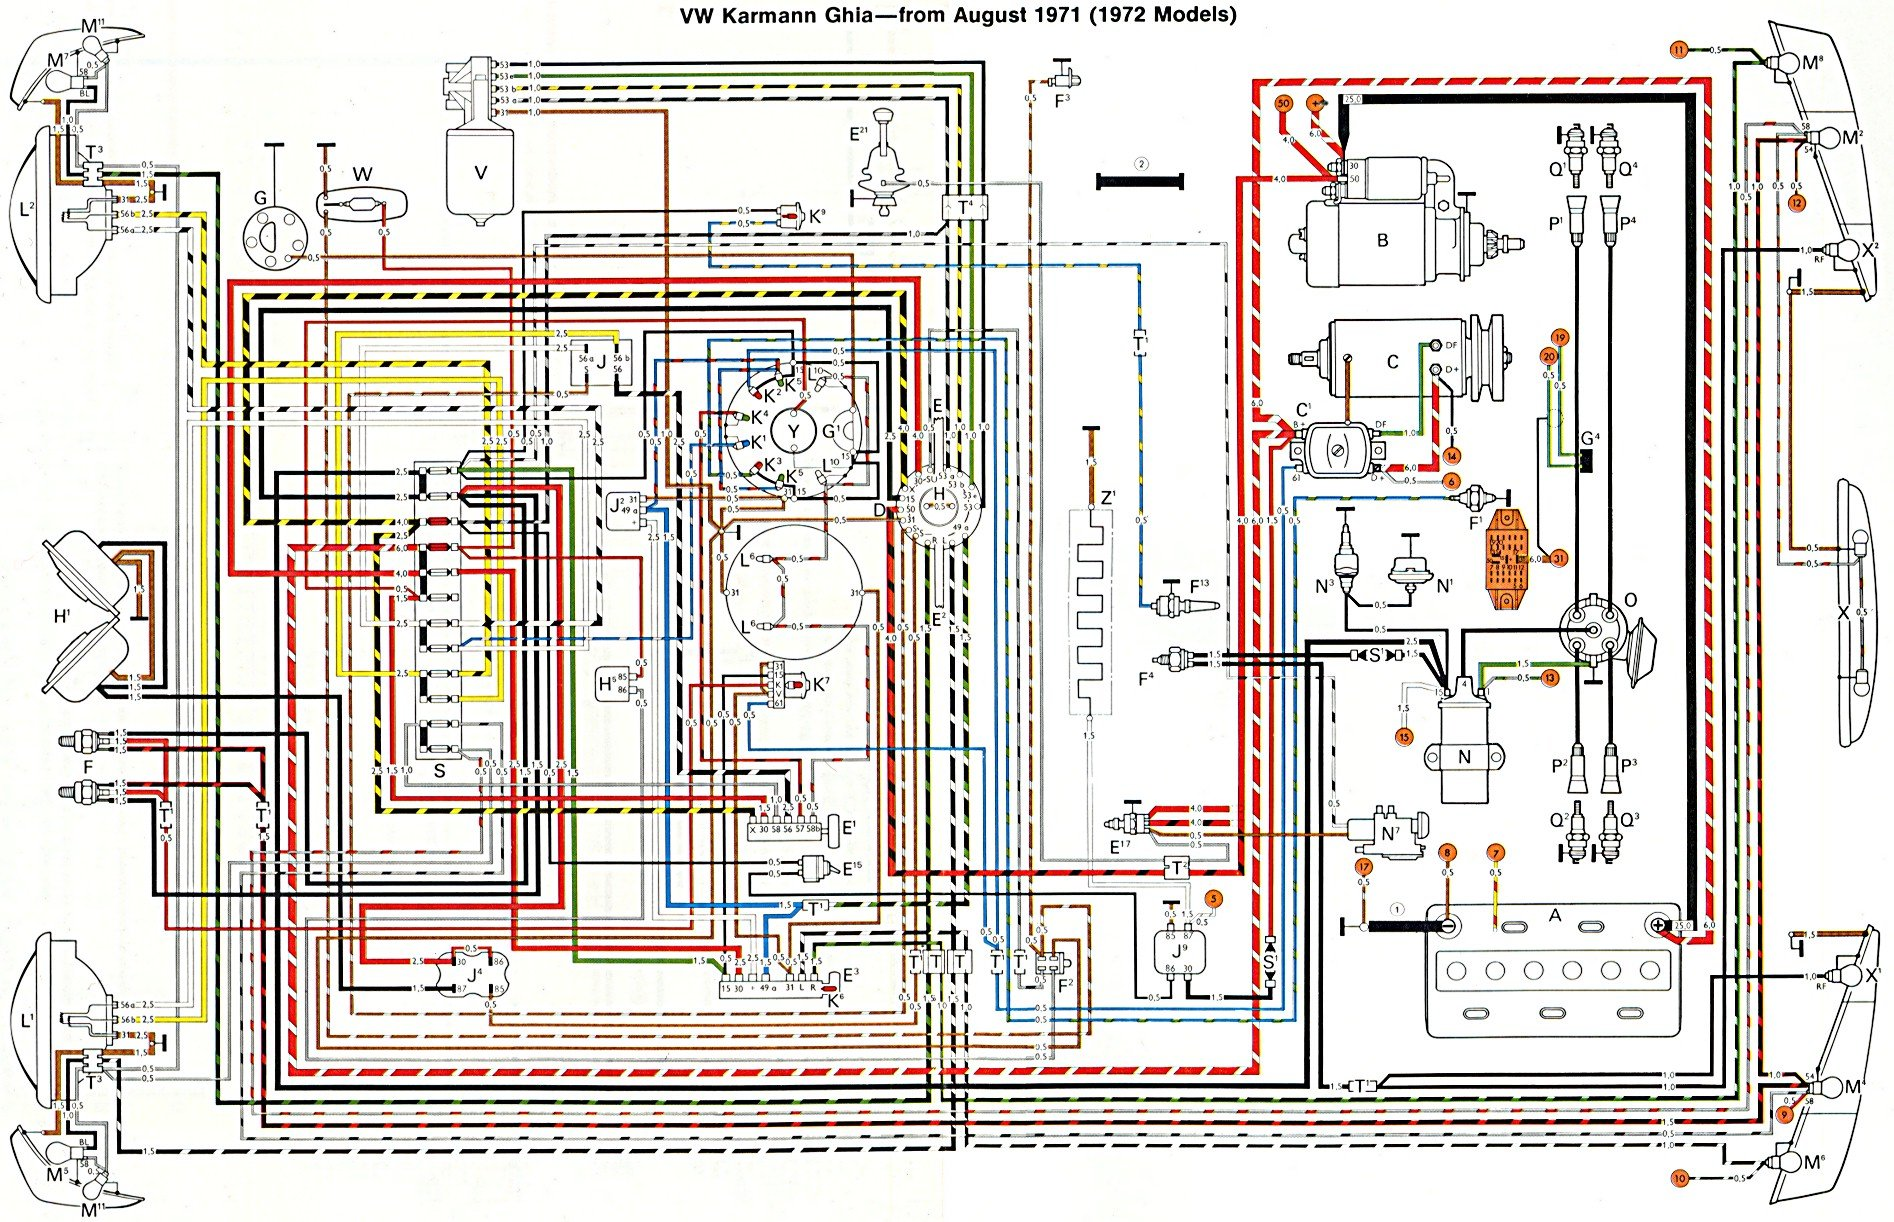 Karmann Ghia Wiring Diagrams 67 Corvette Headlight Motor Diagram